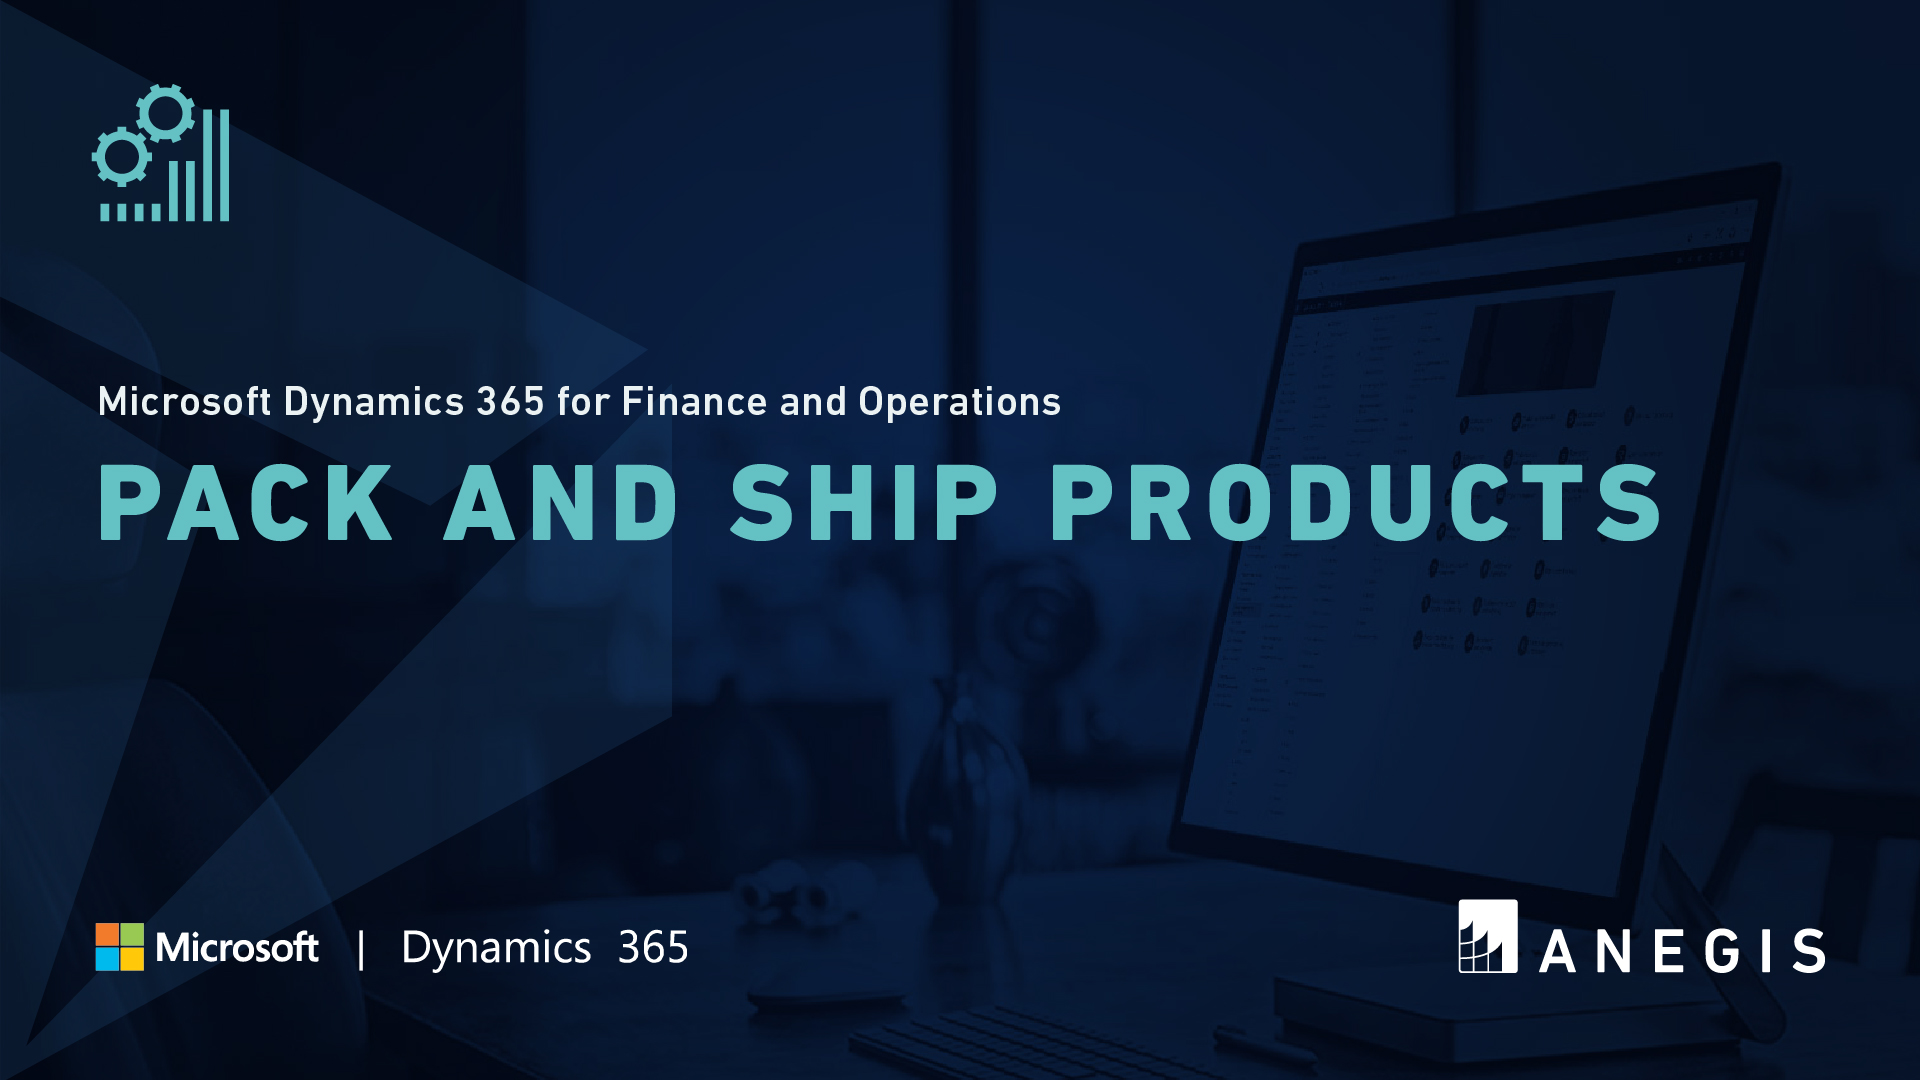 D365 F&O: Pack and Ship Products